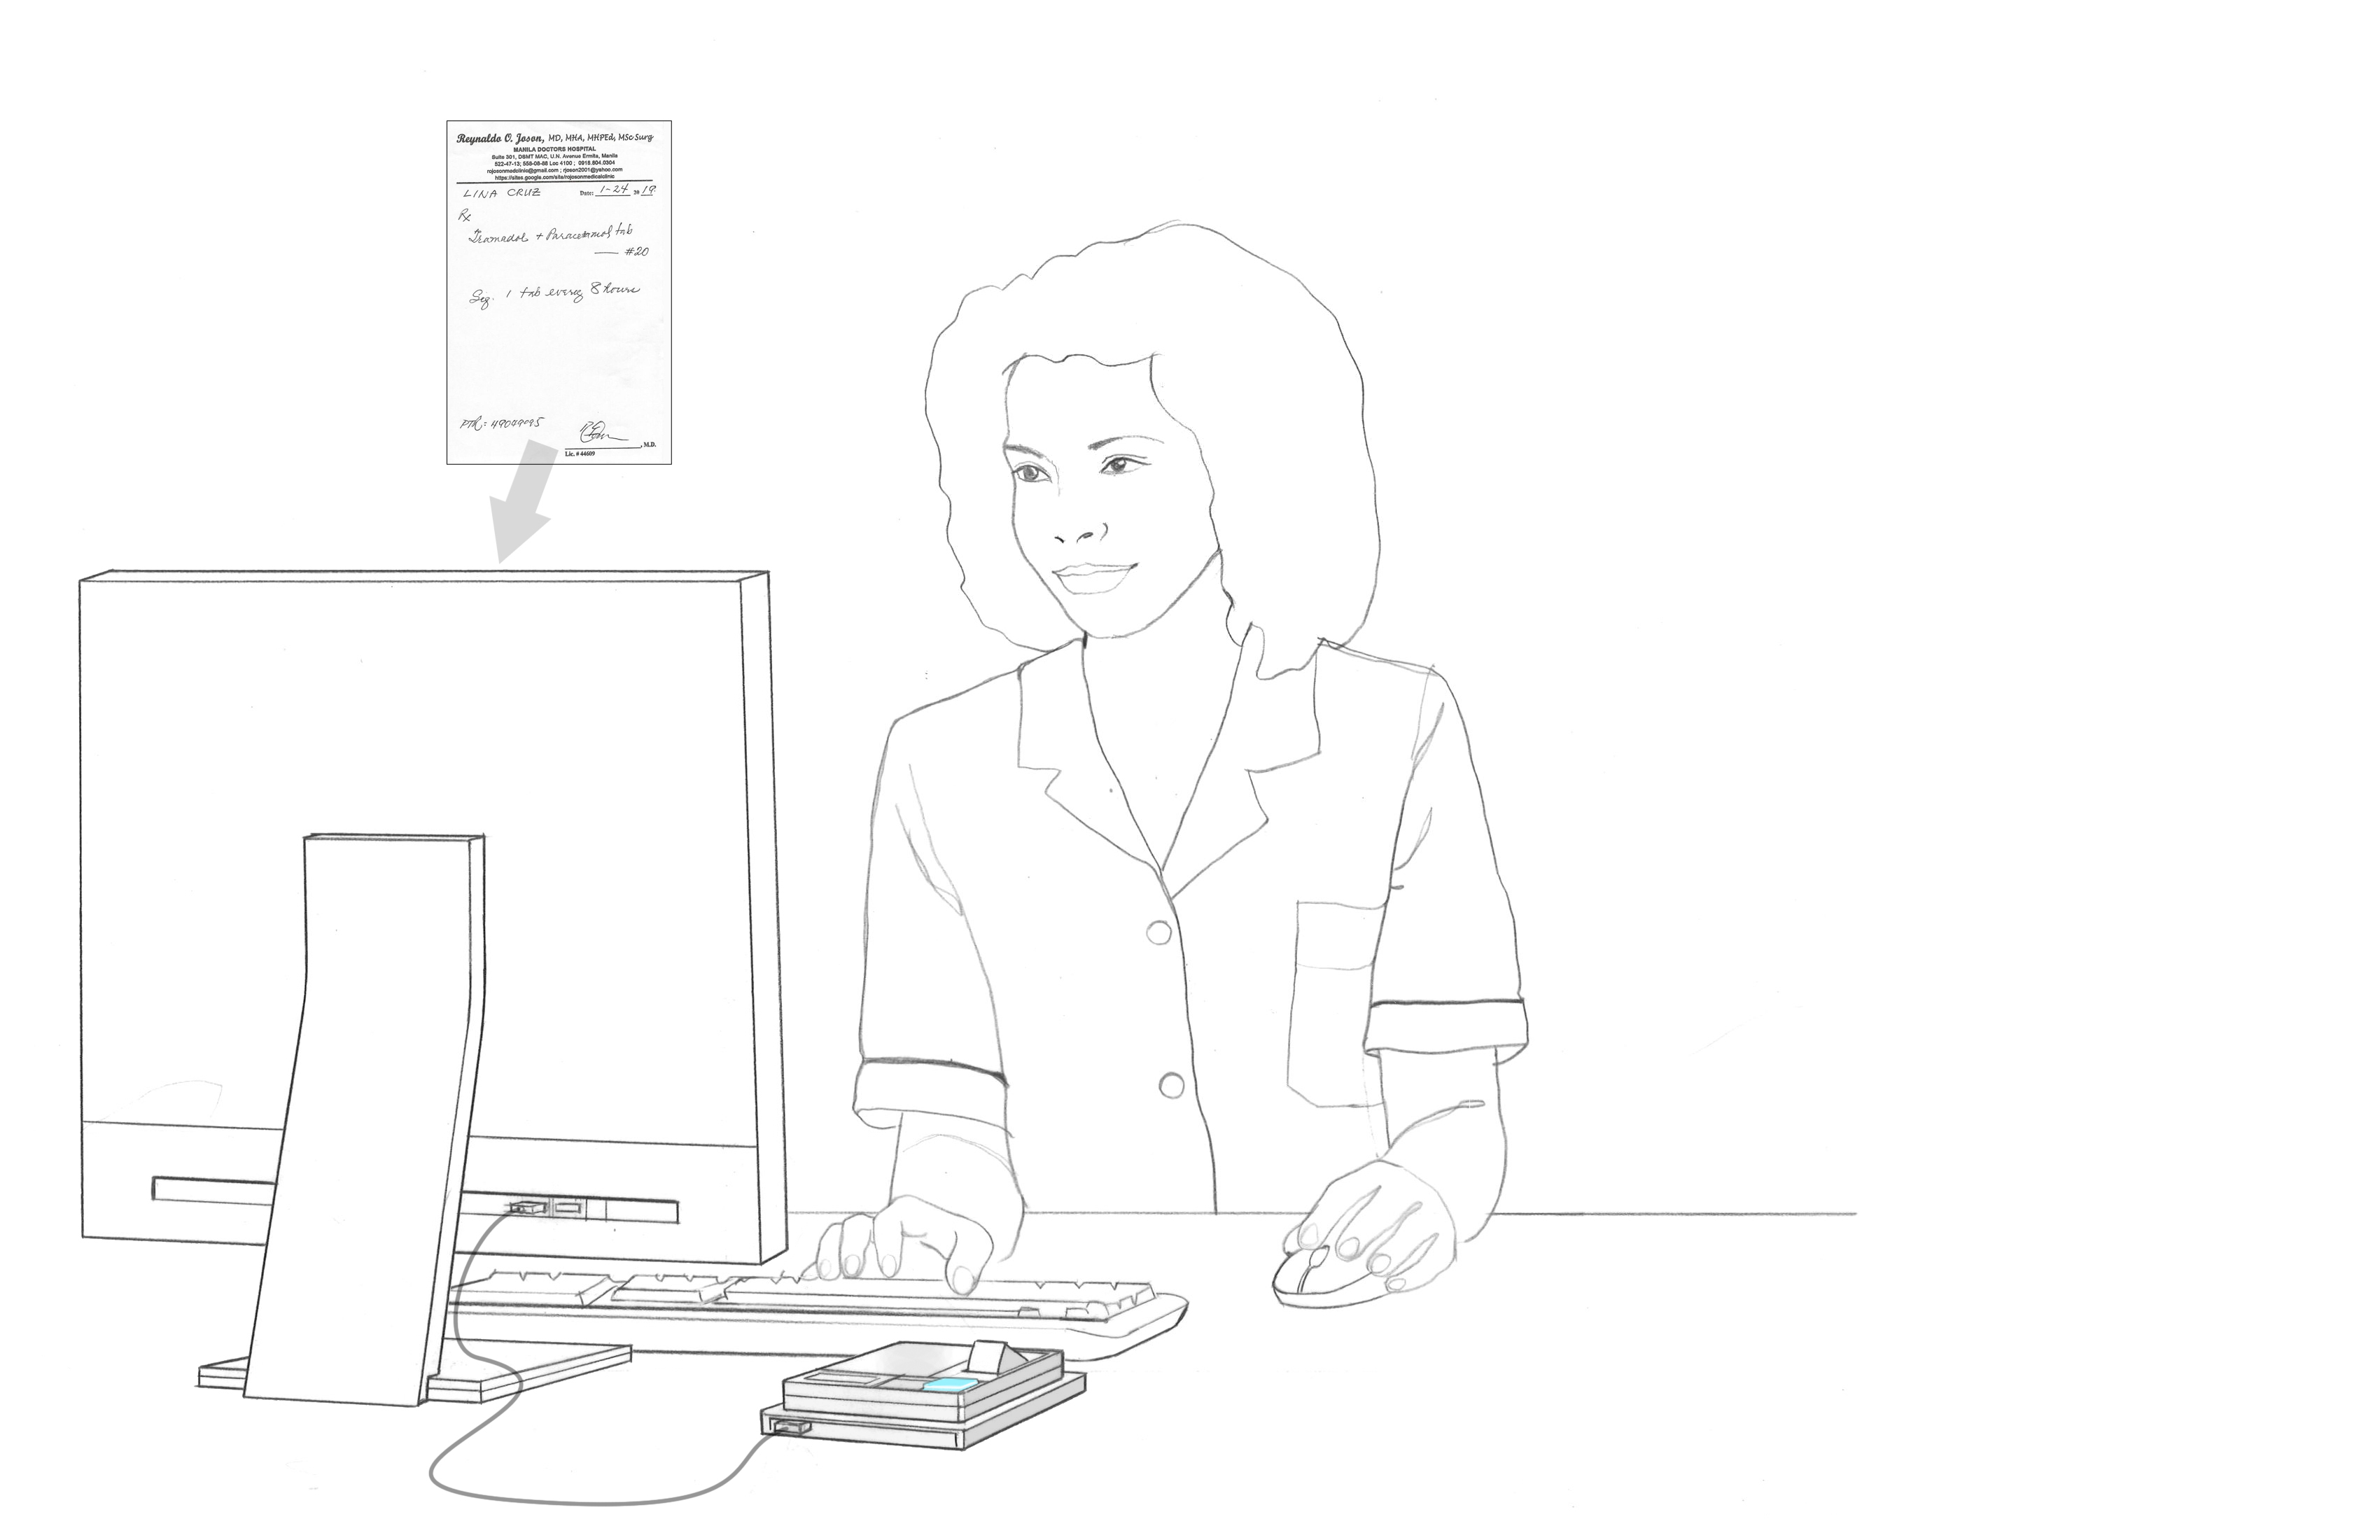 pharmacist checking prescription on computer illustration